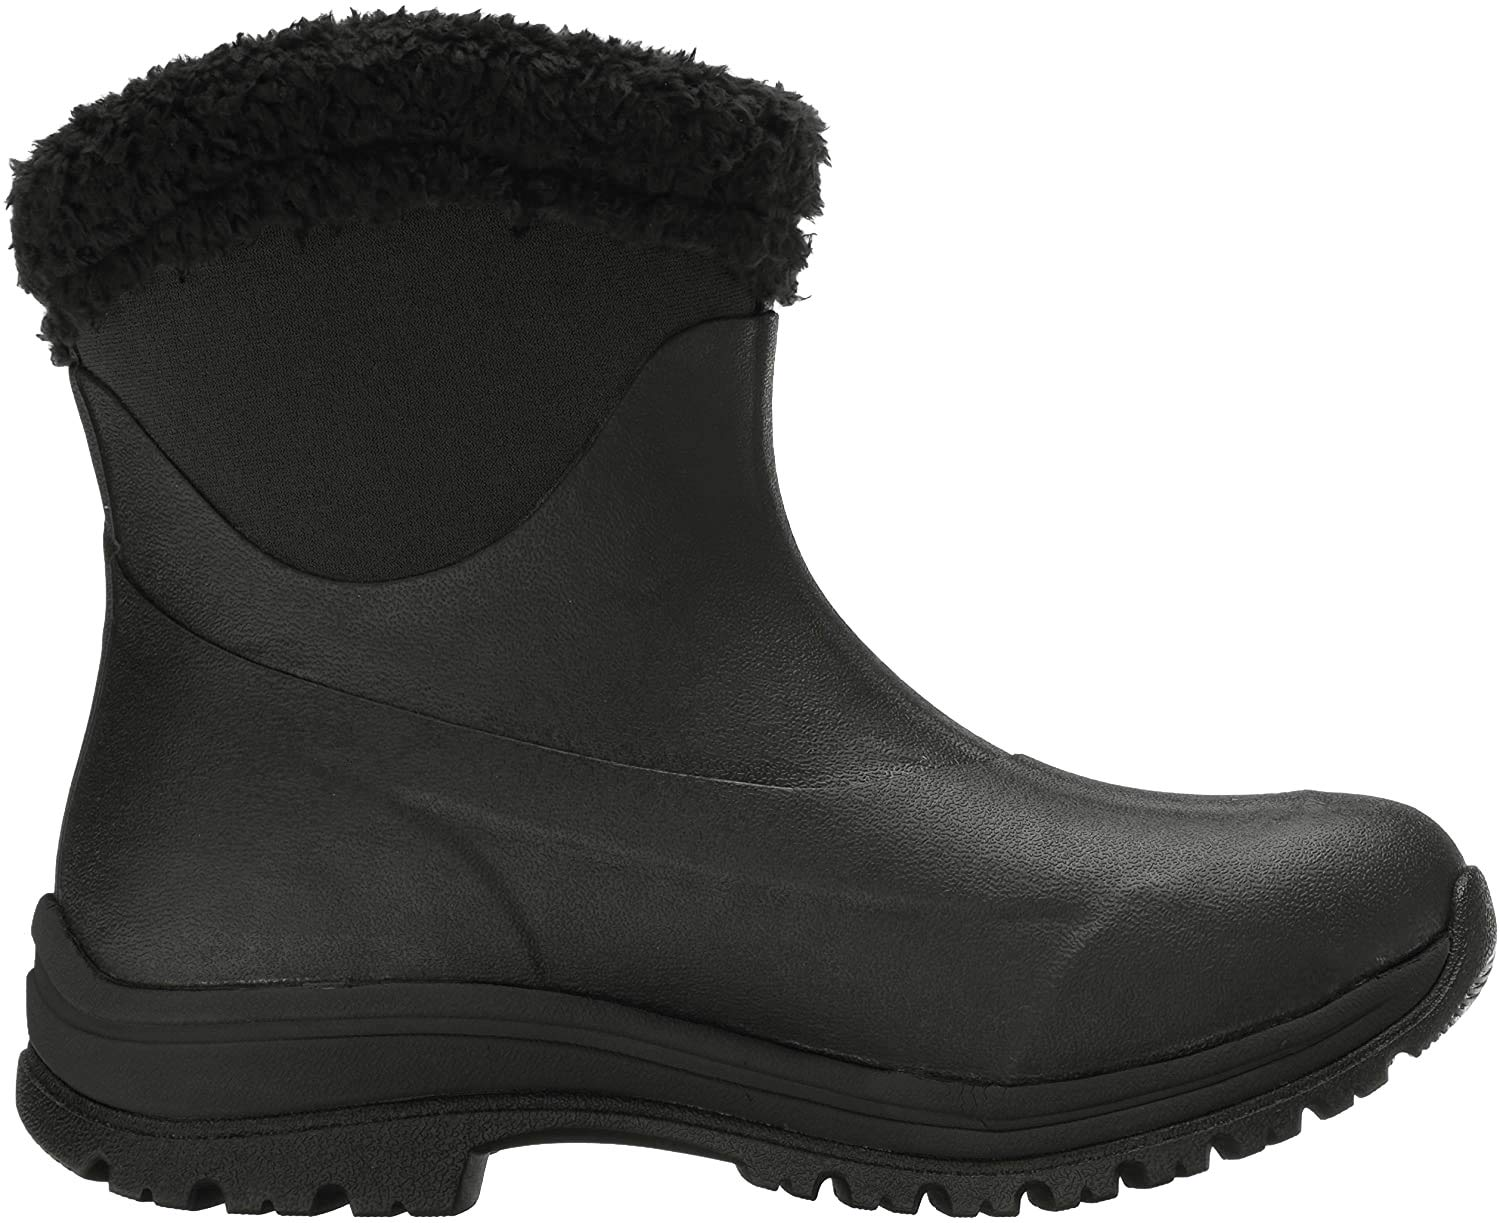 Muck Boot Arctic Après Casual Slip-On Rubber Women's Winter Boot